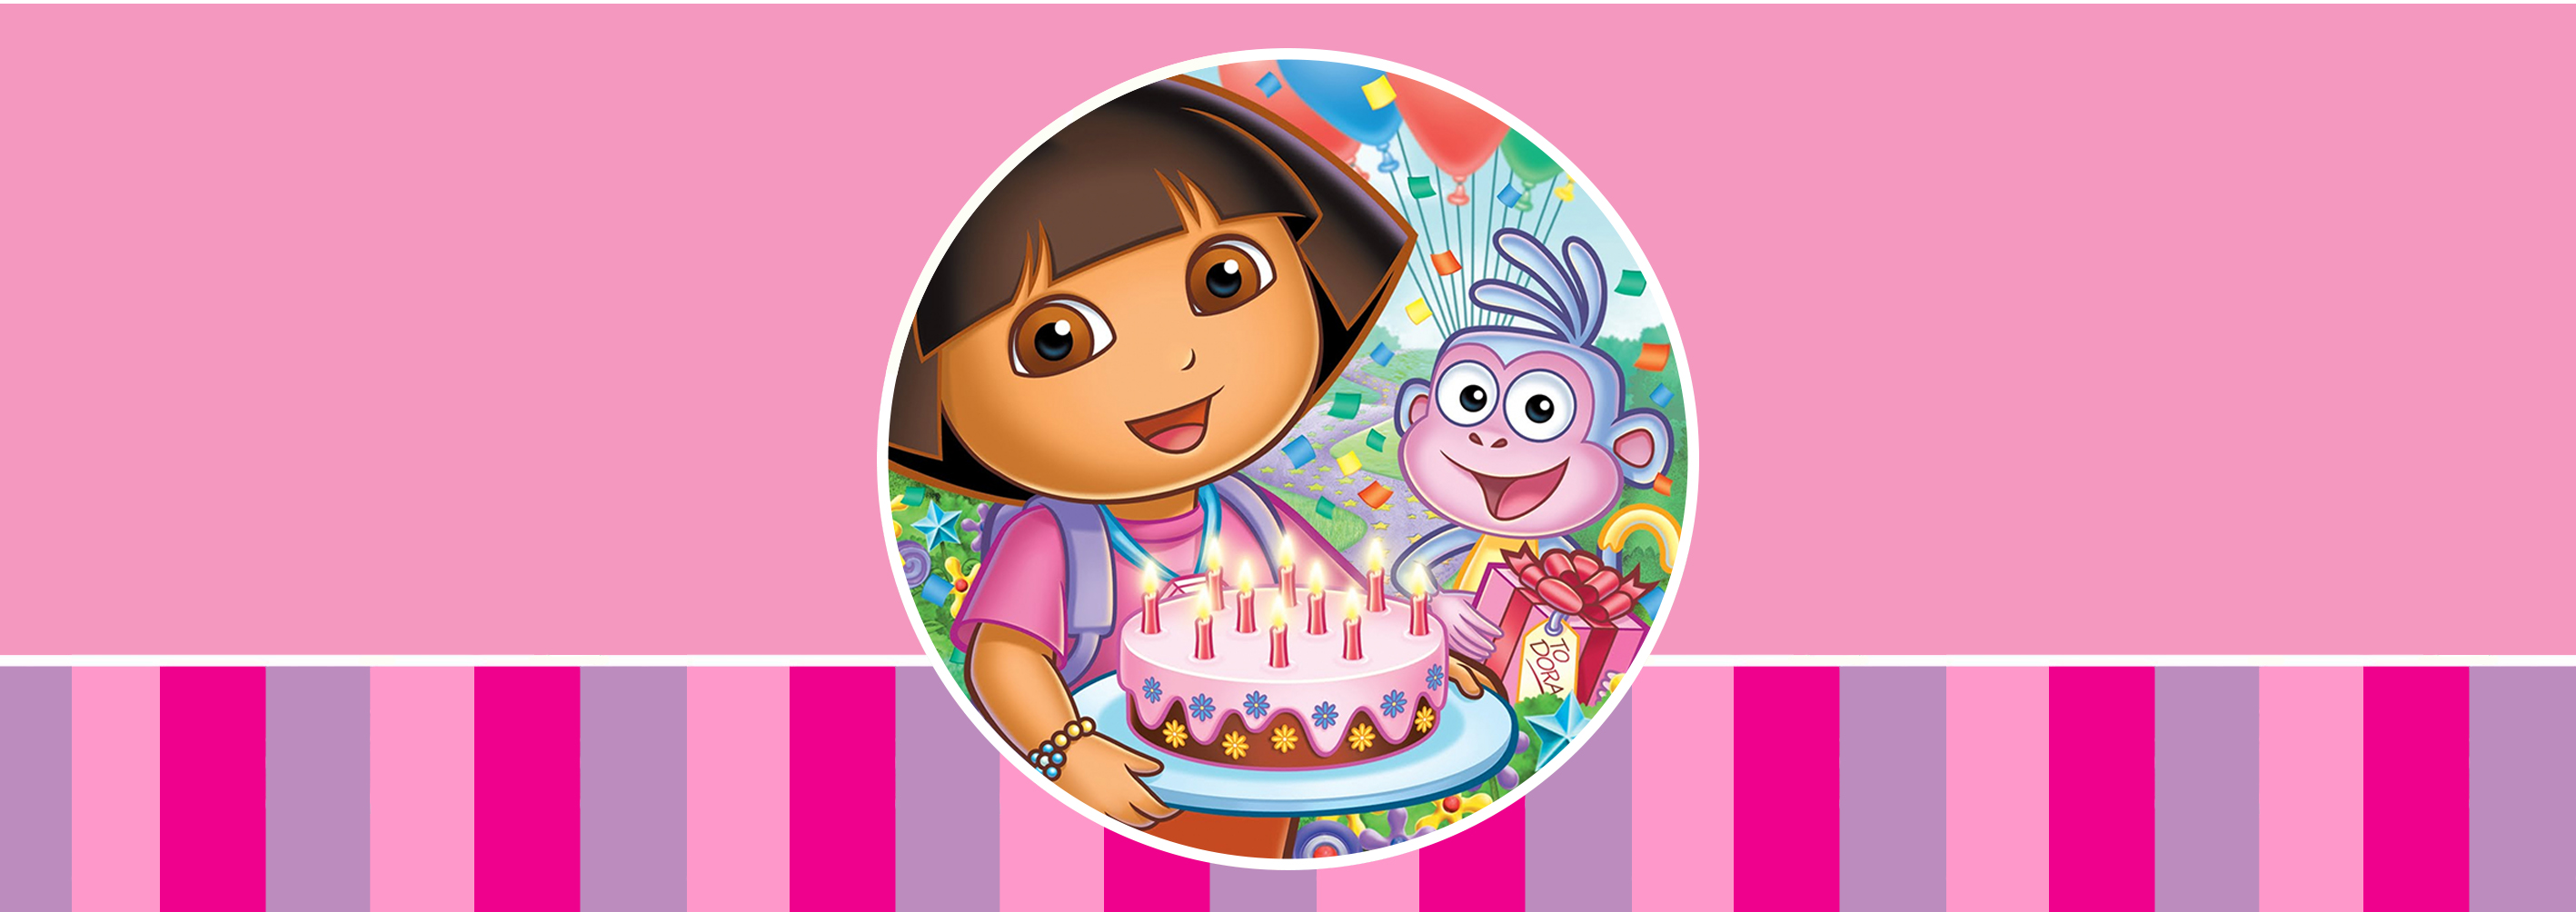 Dora The Explorer Wallpaper Pictures to Pin 2835x1004